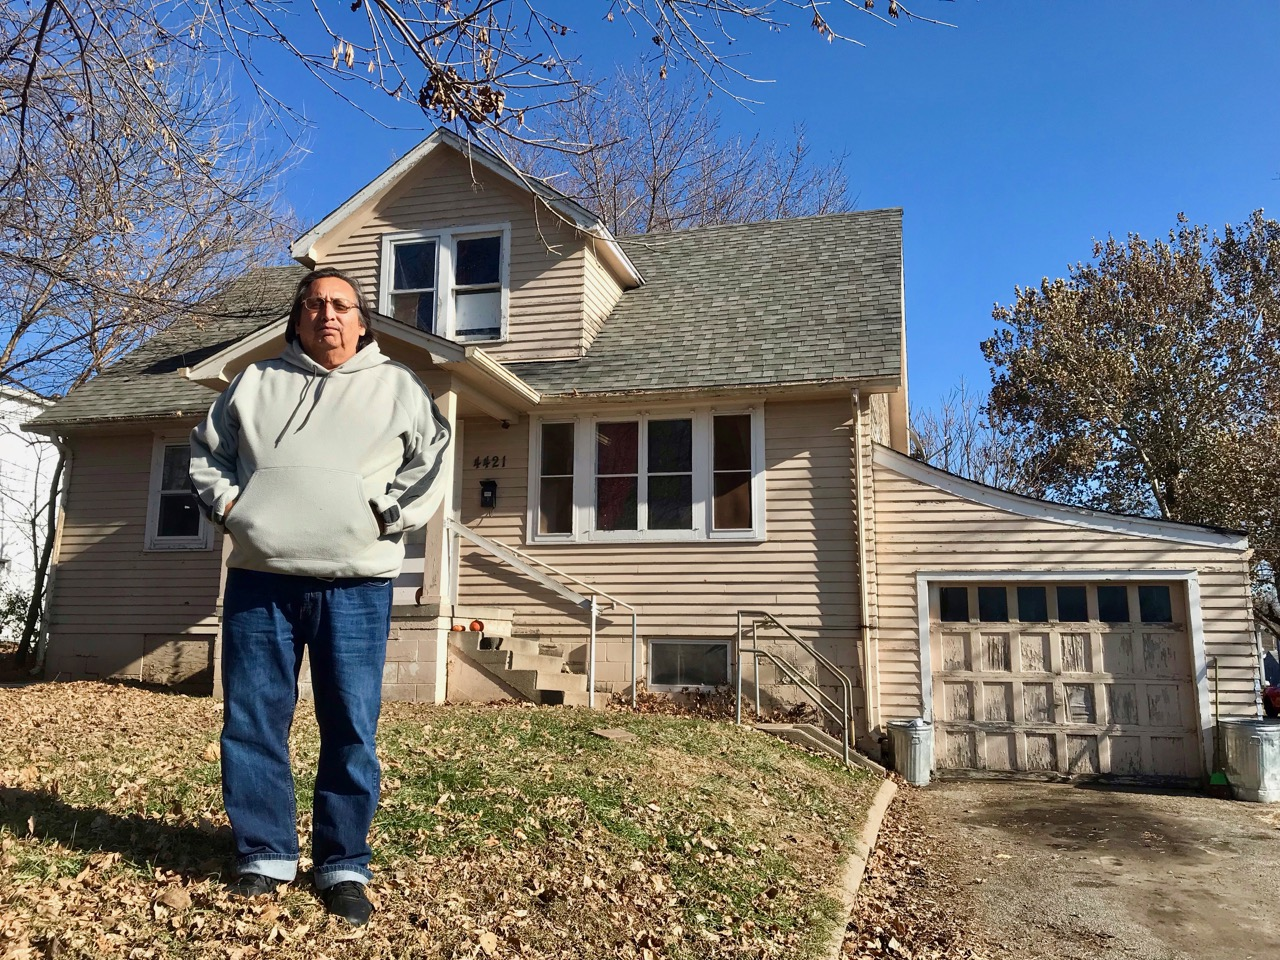 'They have no heart': Native veteran being forced out of his home